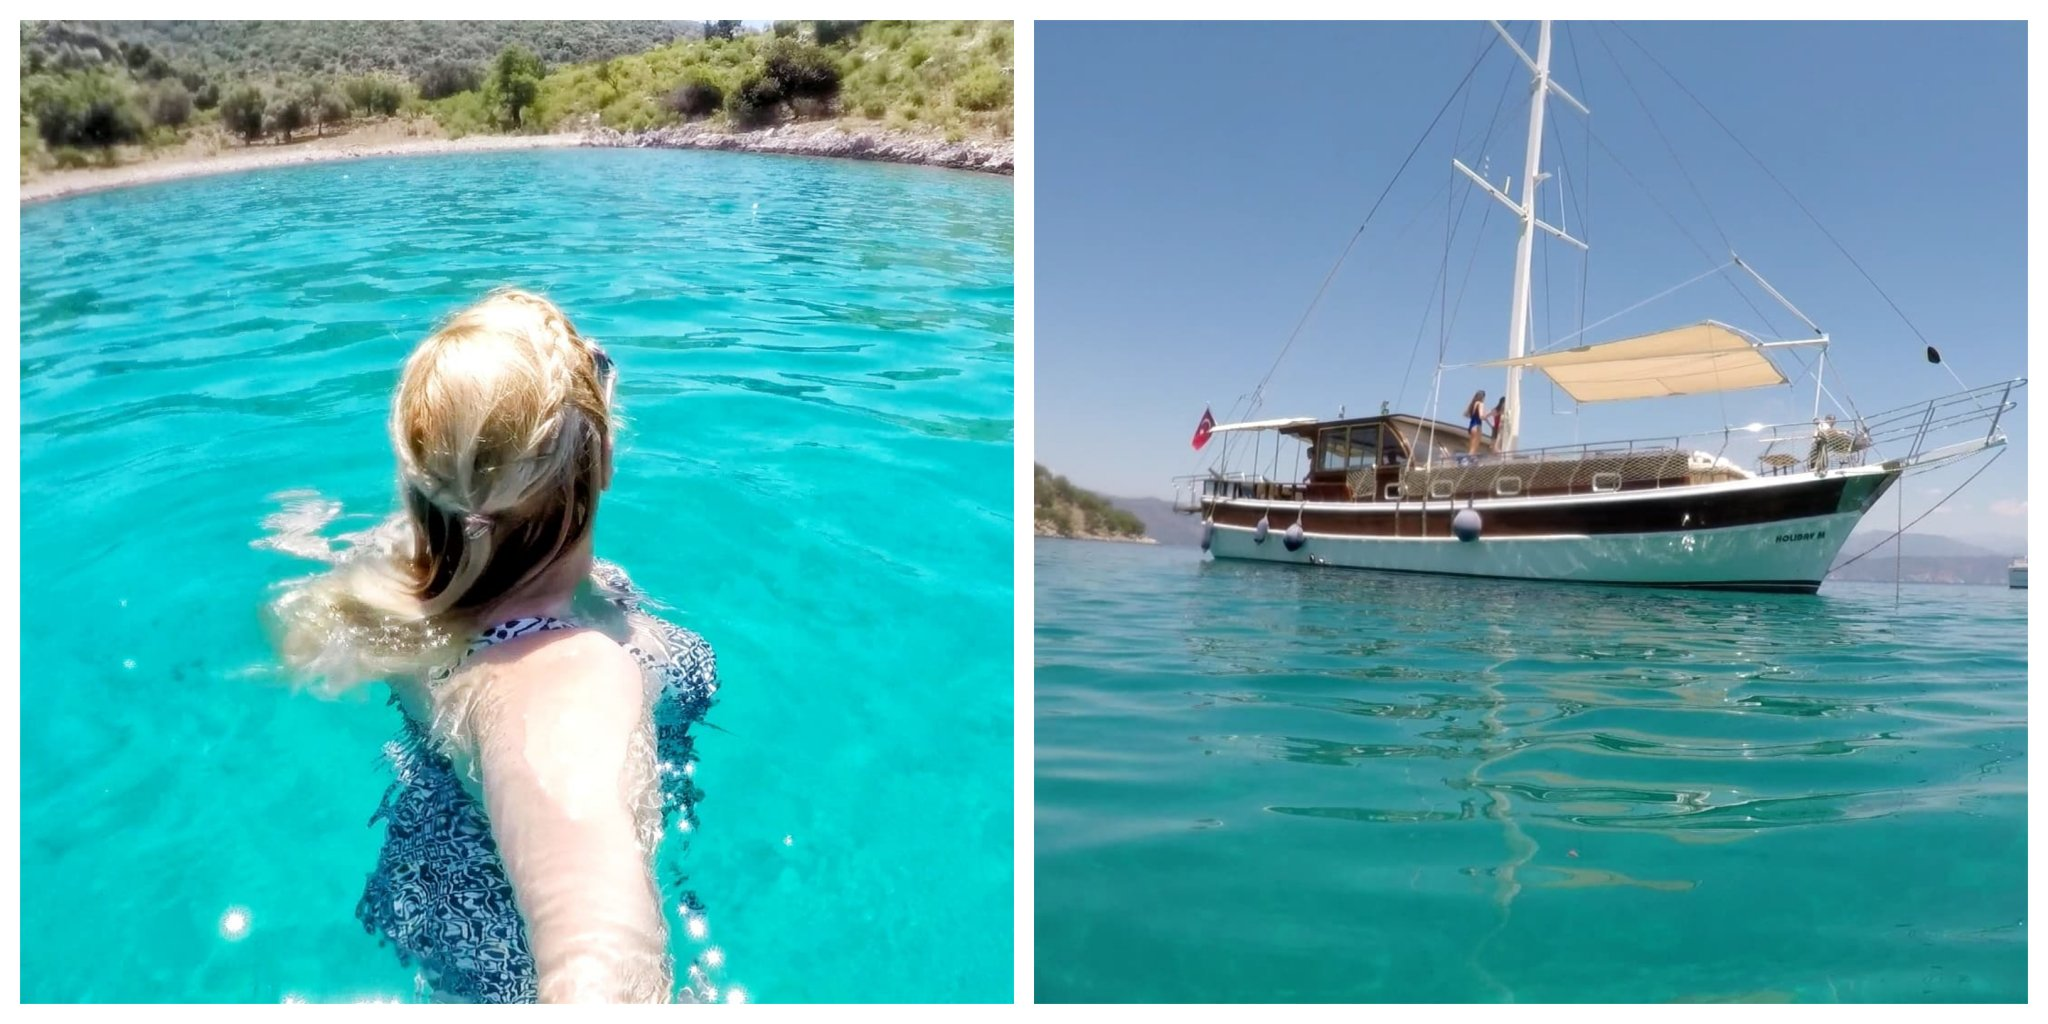 Guide to Dalaman - Turkey's Turquoise CoastGuide to Dalaman - Turkey's Turquoise Coast